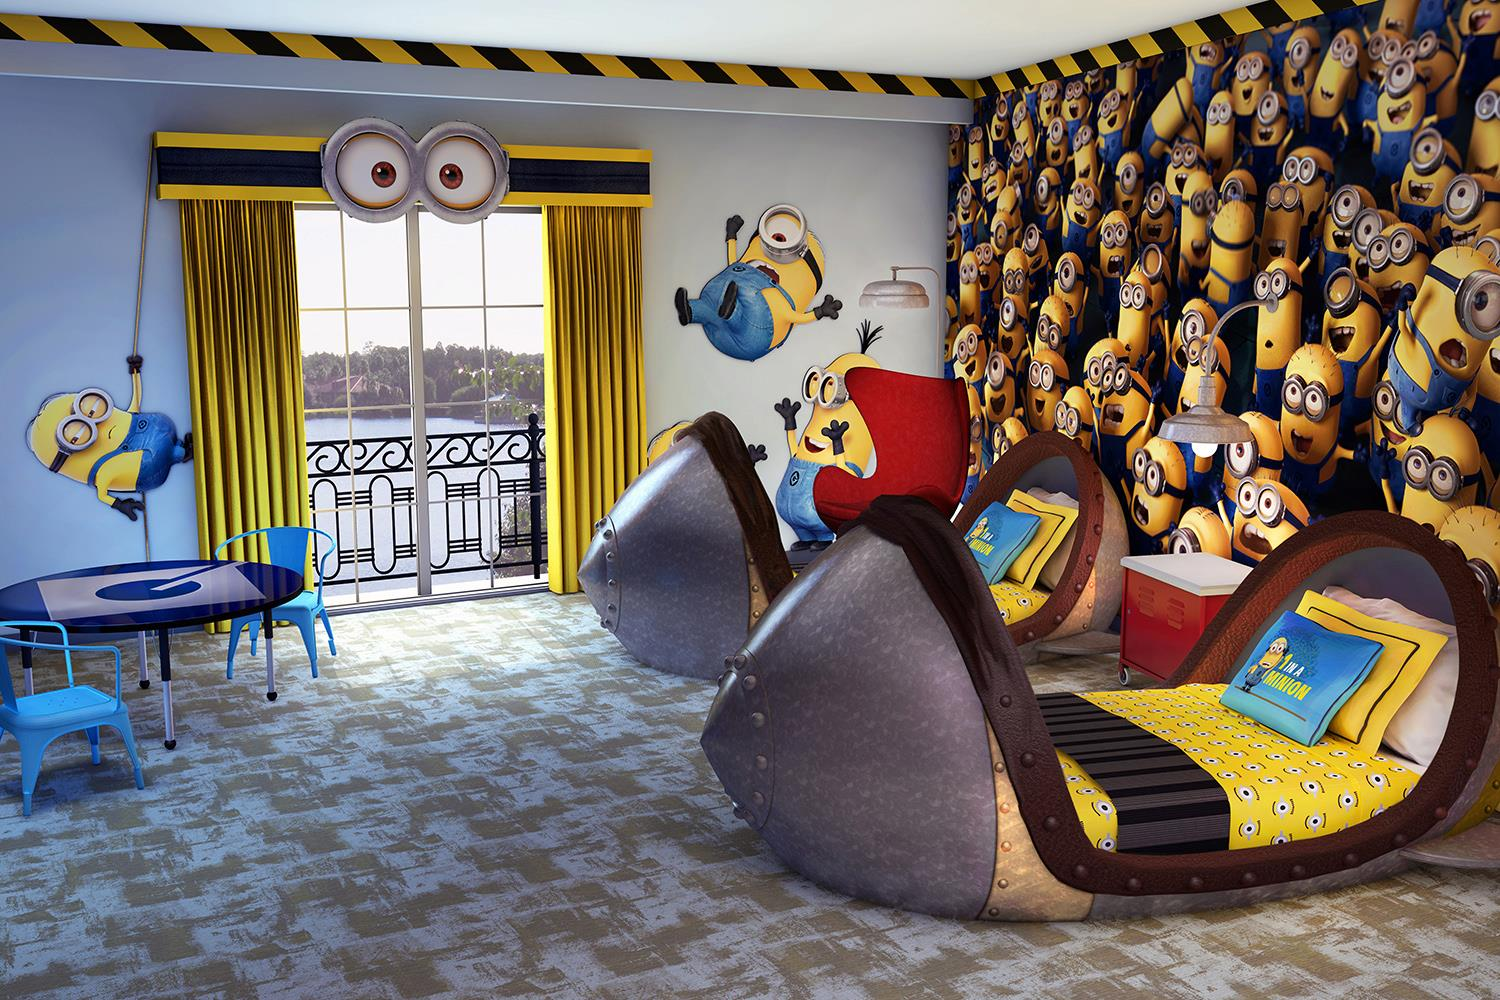 Loews Portofino Bay Hotel At Universal Orlando Invites You To Experience  The World Of Despicable Me